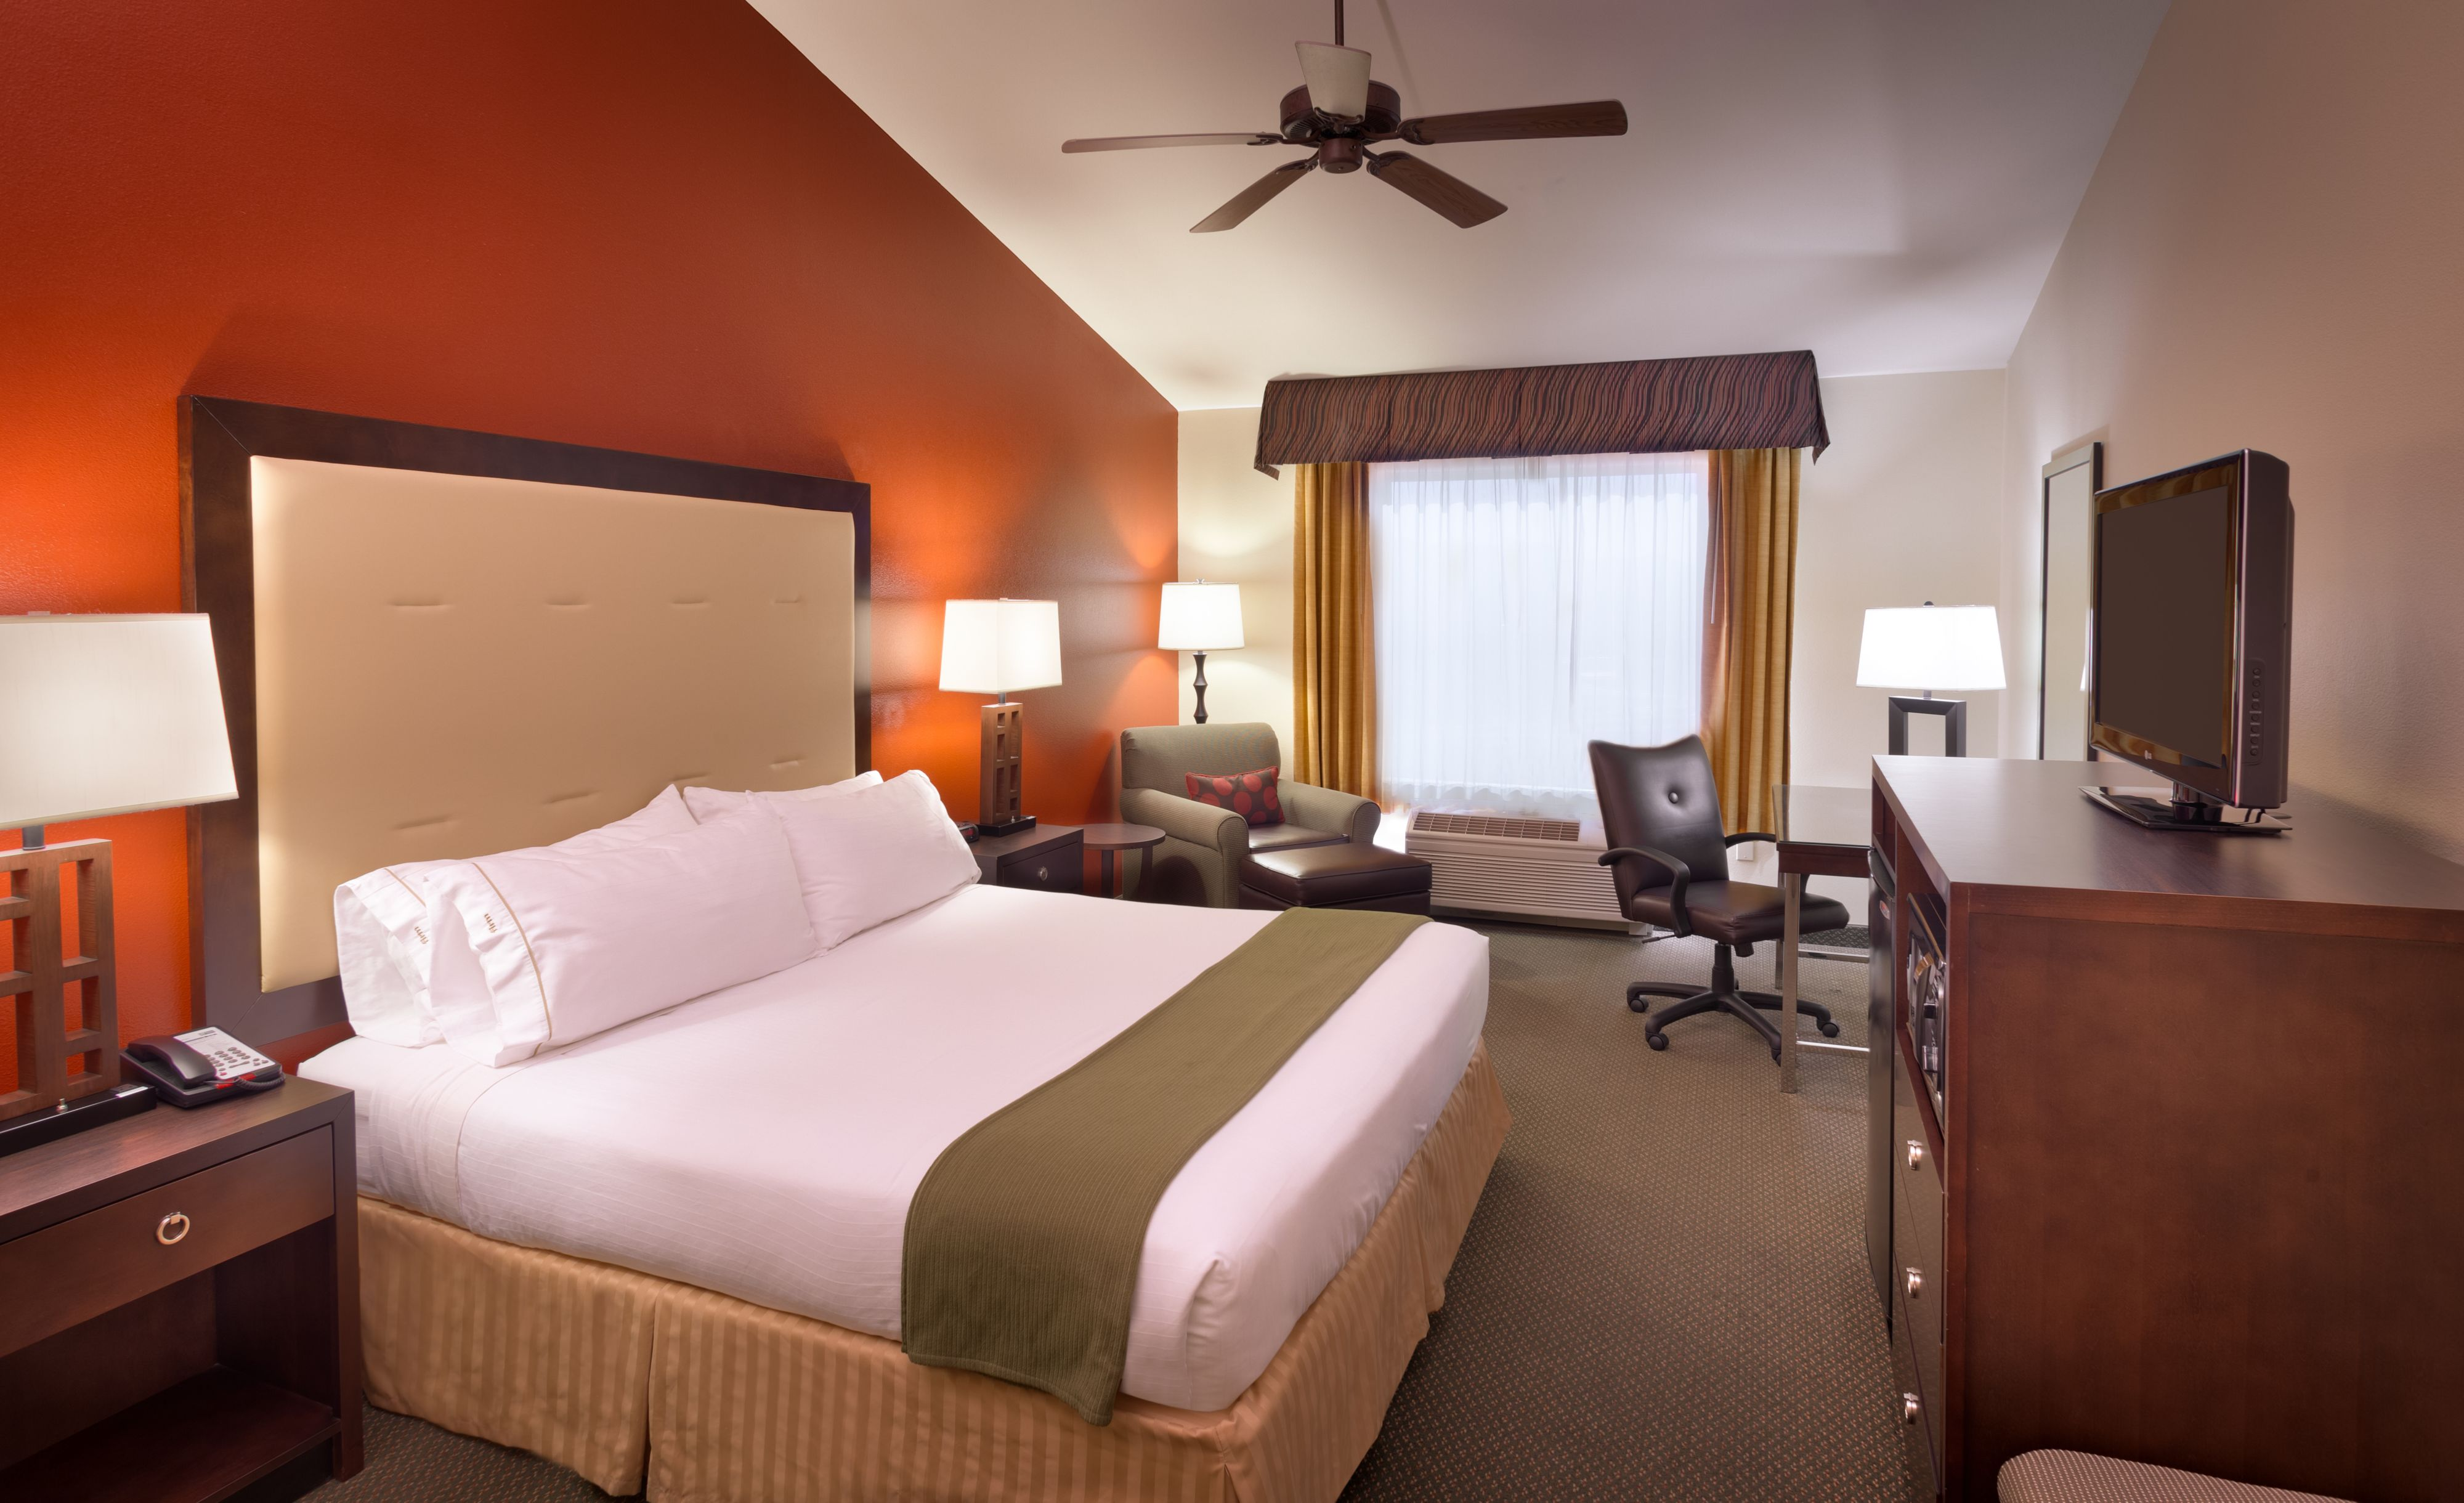 holiday-inn-express-and-suites-mesquite-3659598927-original.jpg